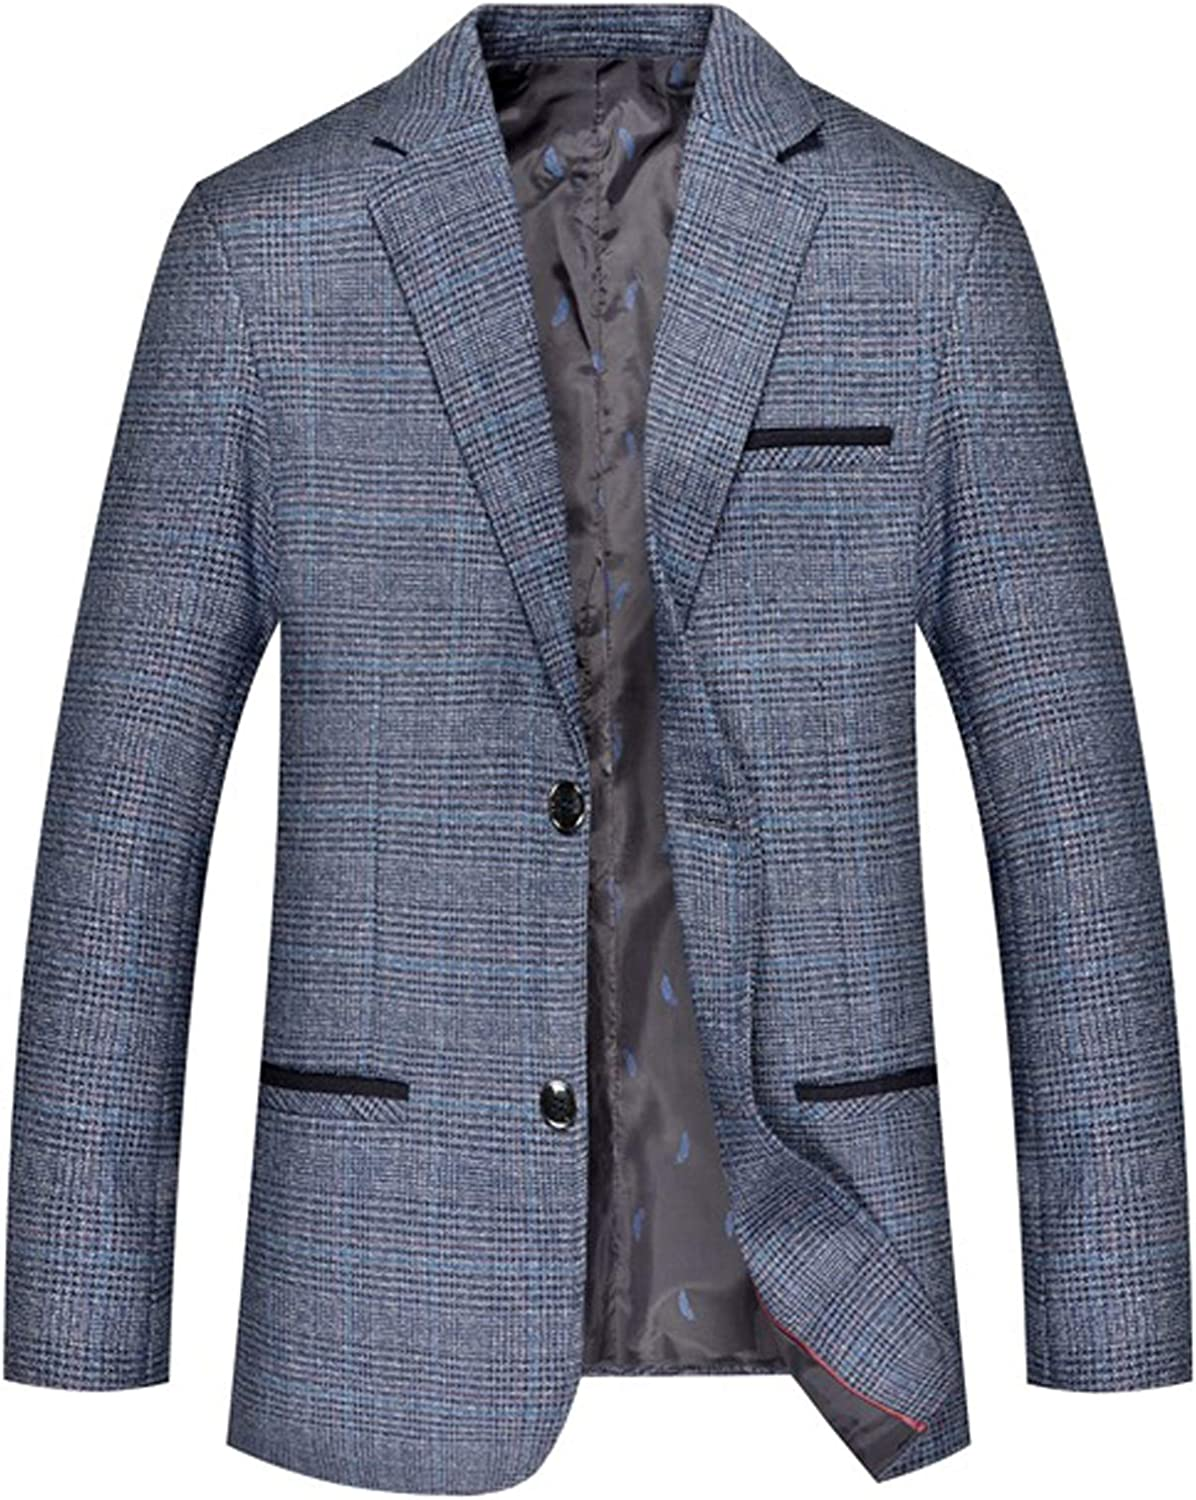 Mens Blazer Classic Fit Casual Sports Coats Notched Collar 2 Button Business Daily Suit Jacket